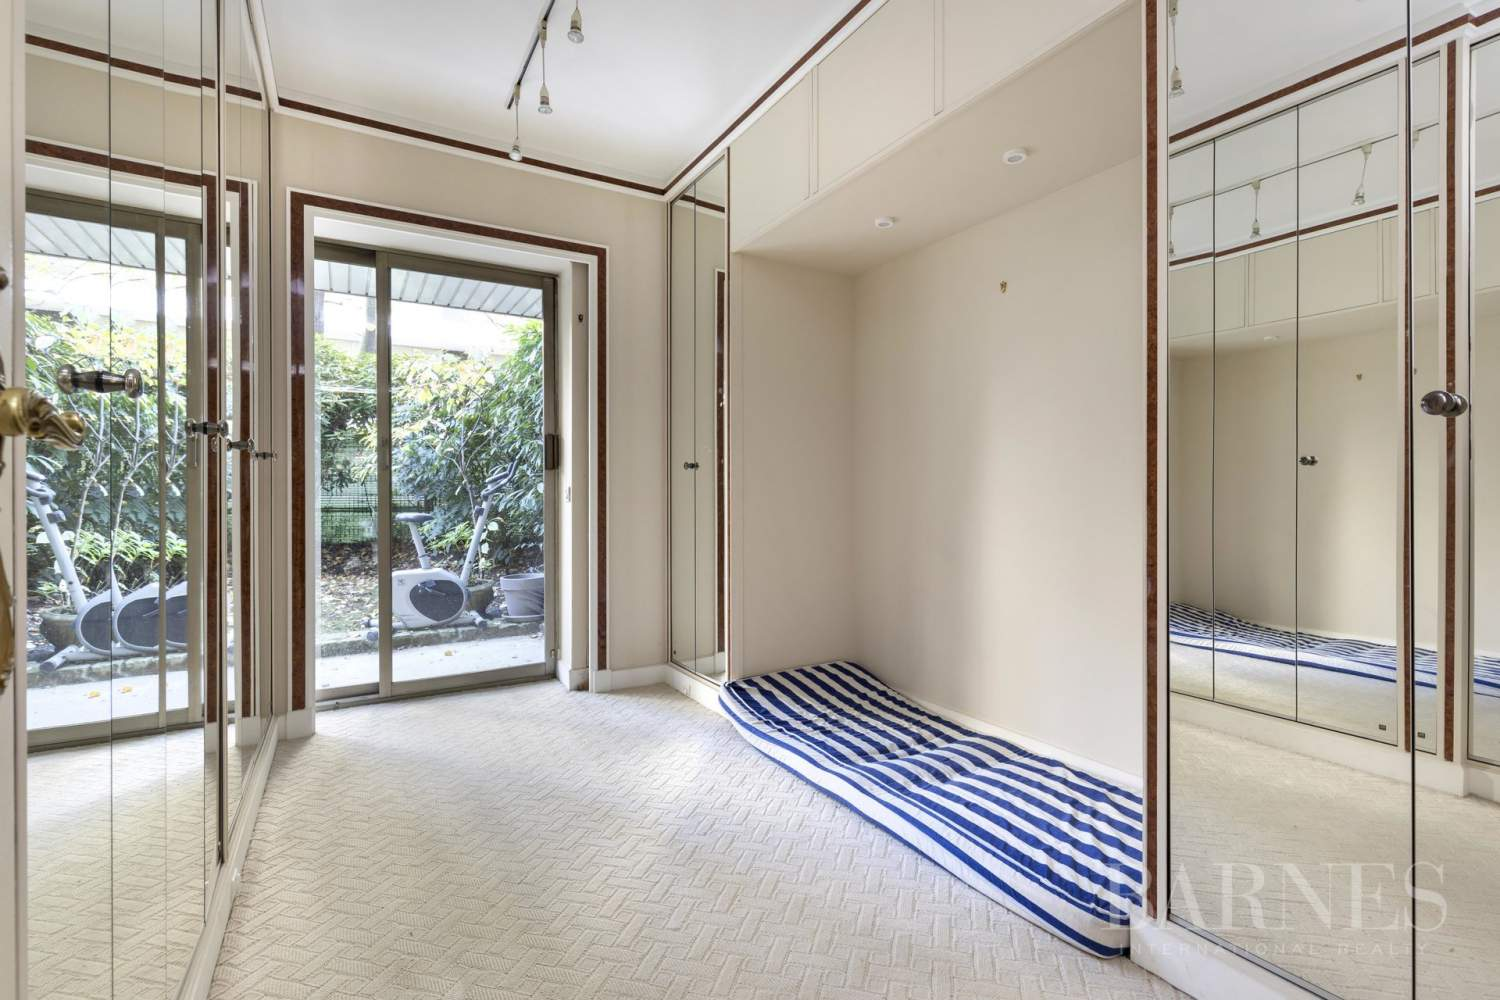 NEUILLY - CHATEAU - JARDIN et TERRASSE - 2/3 CHAMBRES - PARKING picture 11